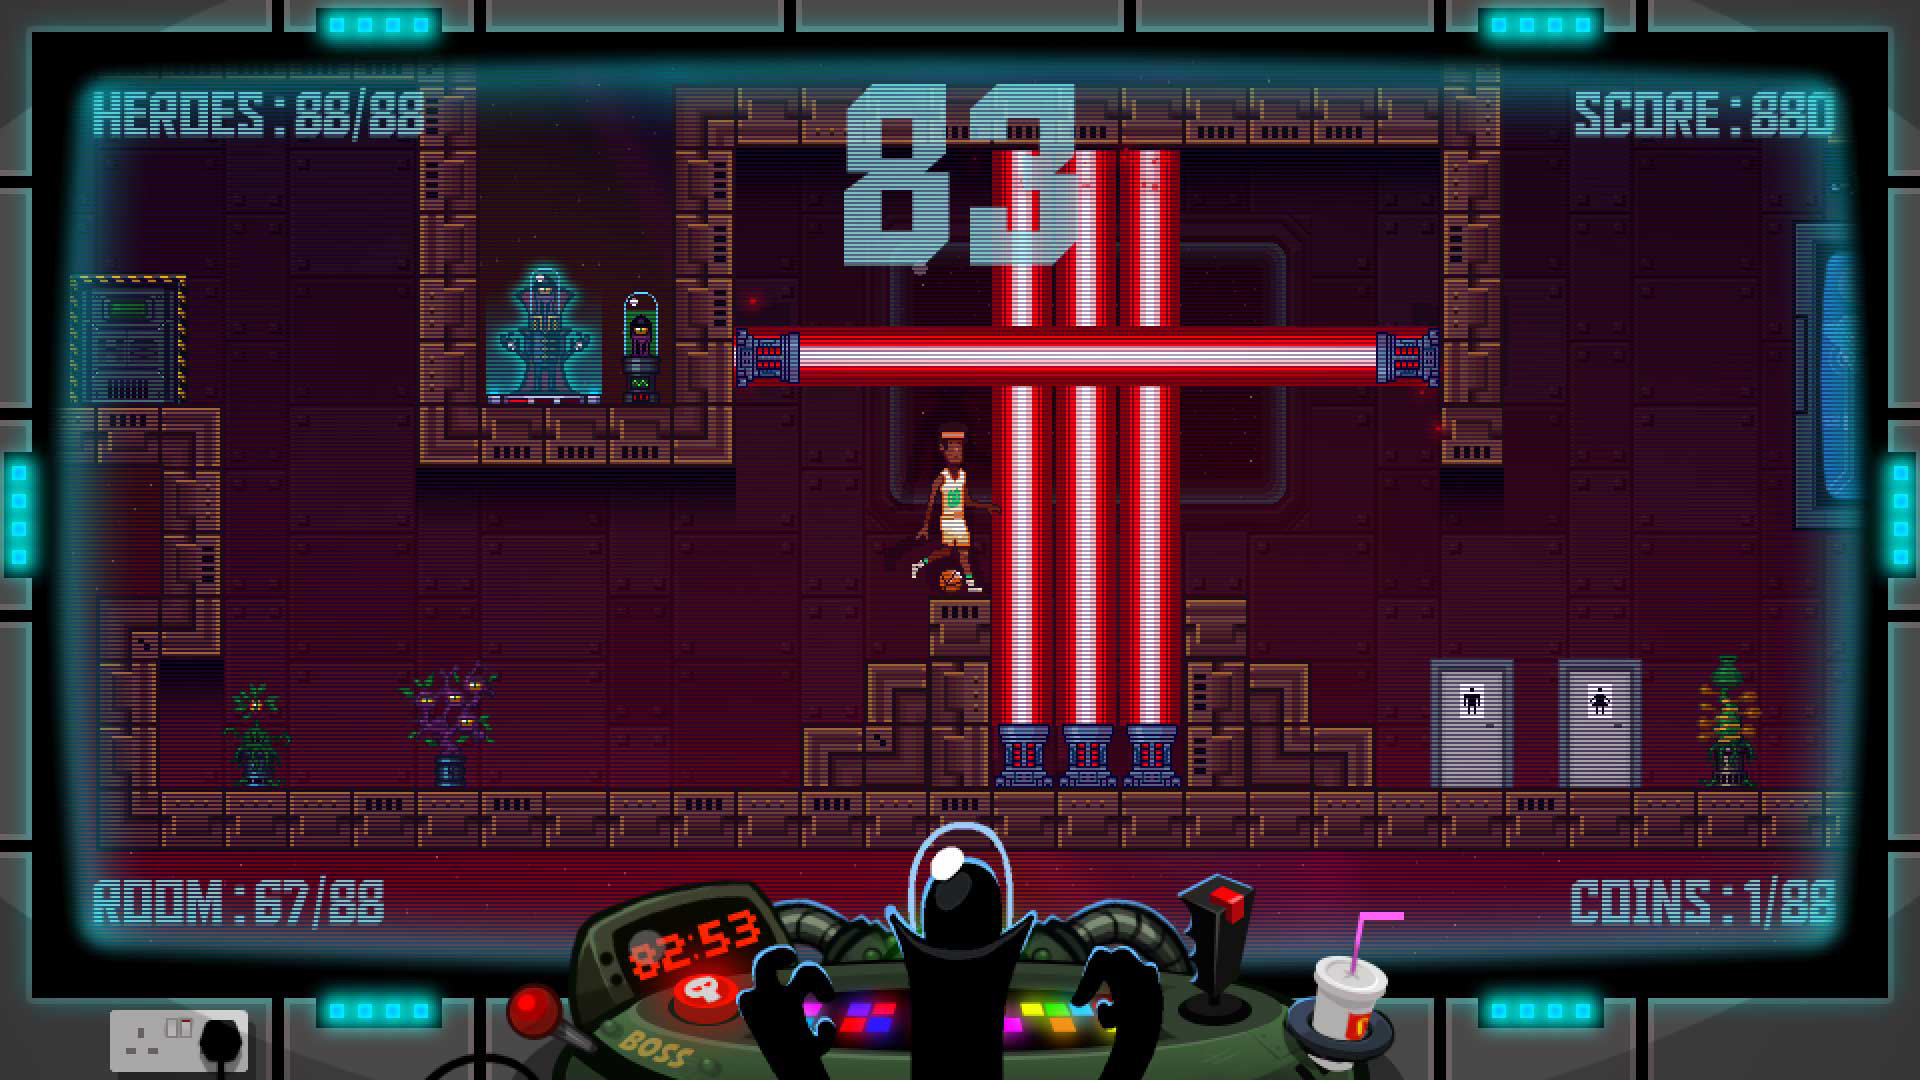 88 Heroes Game   PS4 - PlayStation